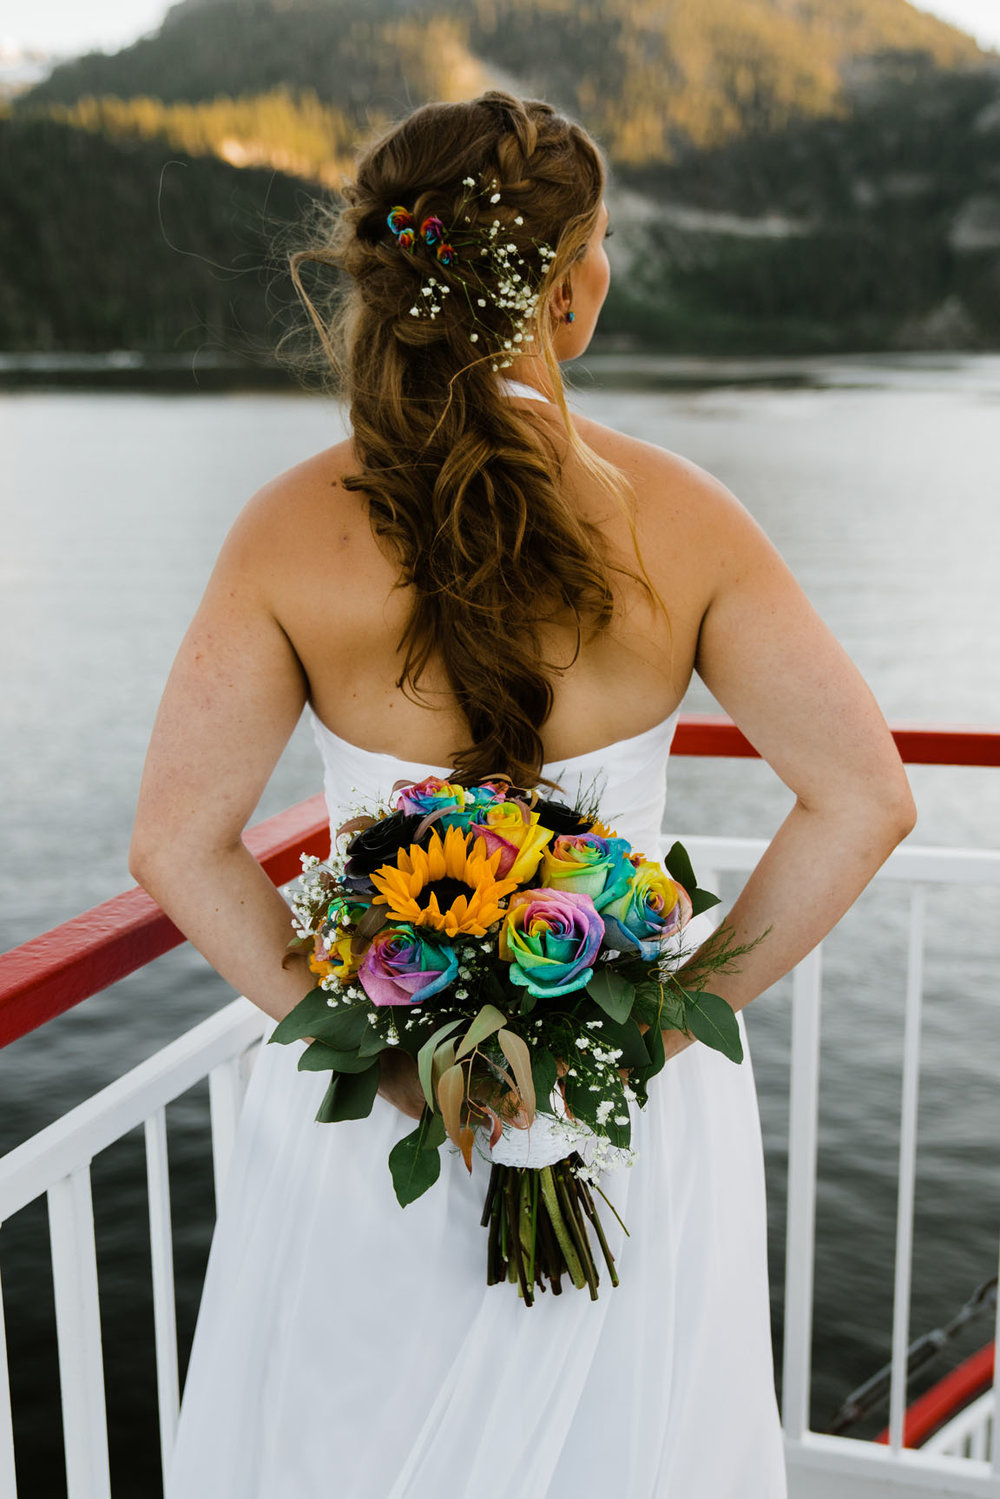 Tie dye wedding bouquet Zephyr Cove Wedding | South Lake Tahoe Wedding | Sonora Photographer | Yosemite Elopement Photographer Bessie Young